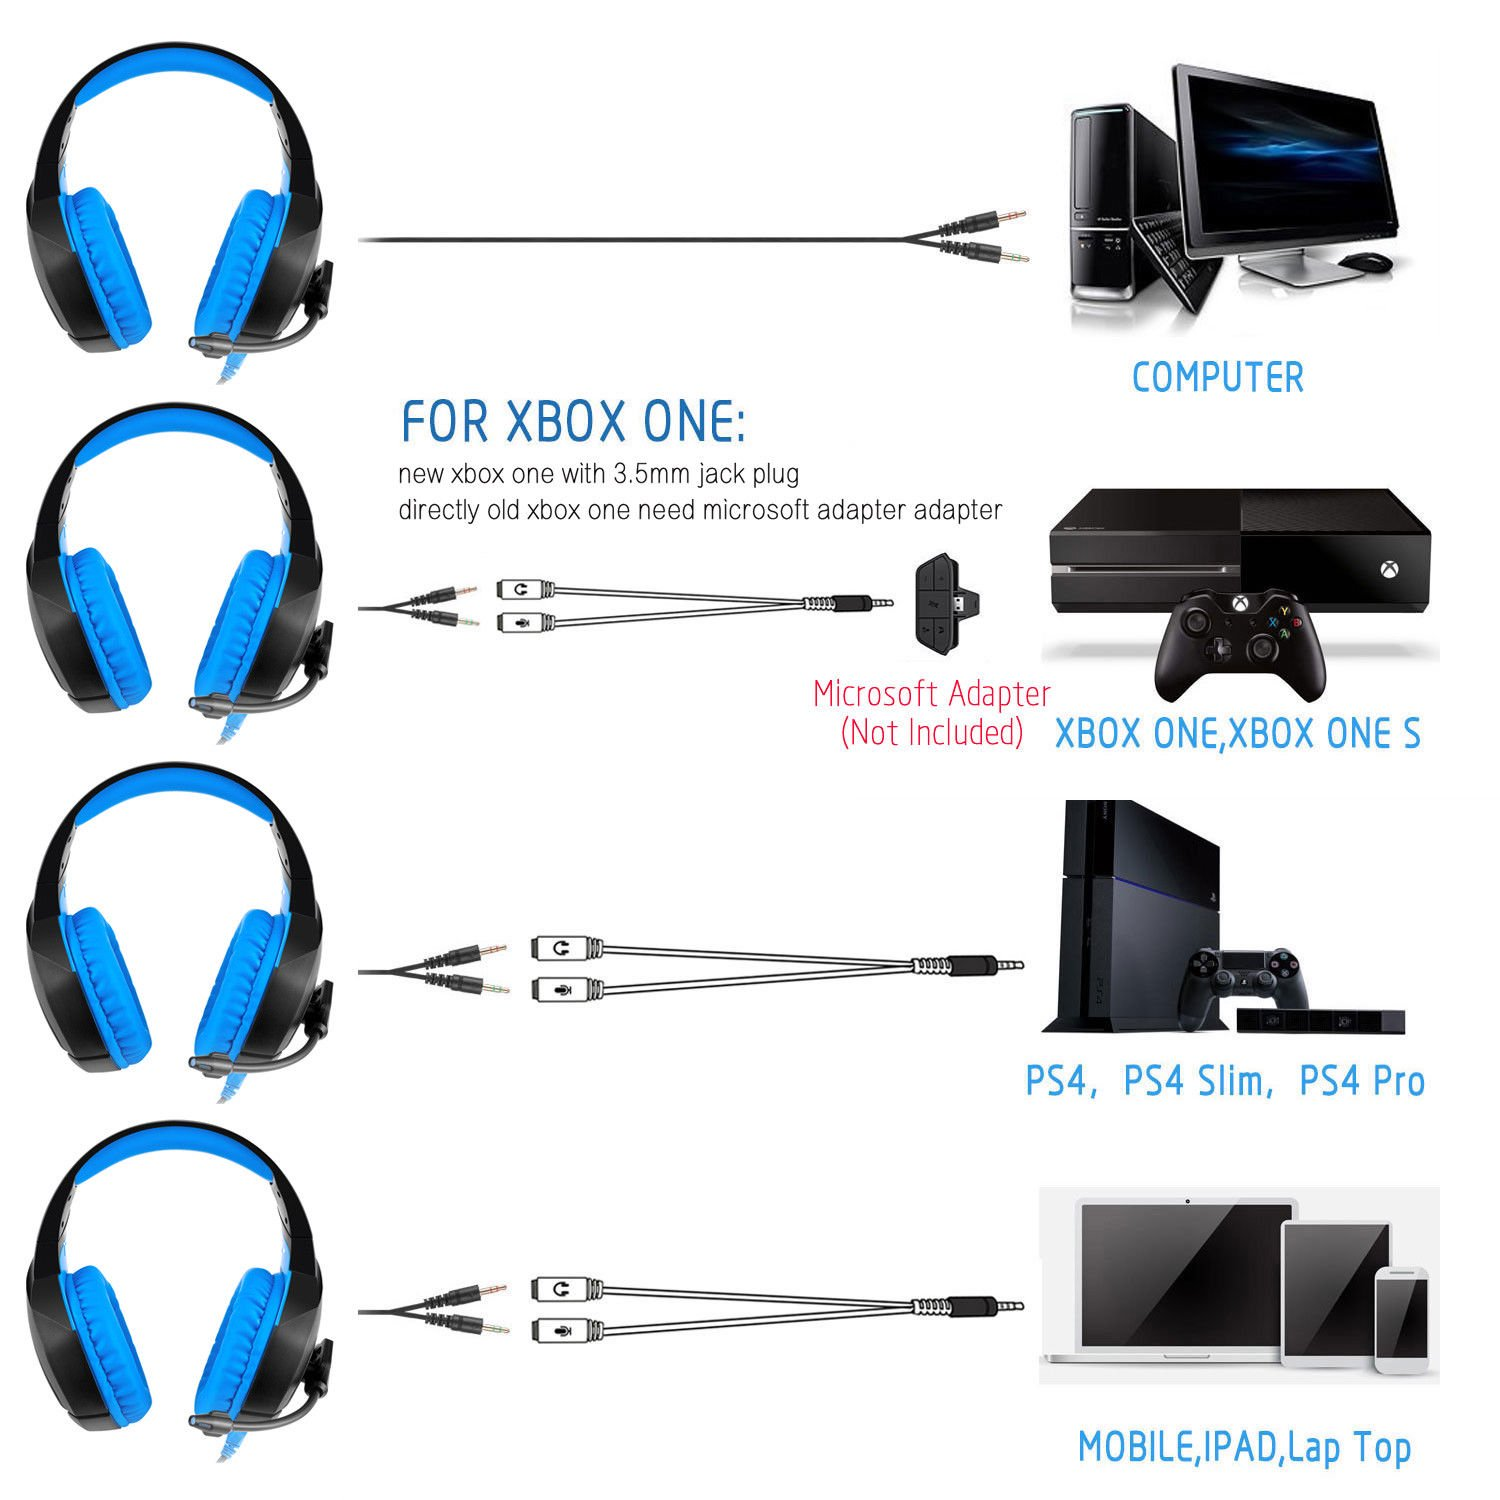 Rose Glen North Dakota ⁓ Try These Logitech G430 Ps4